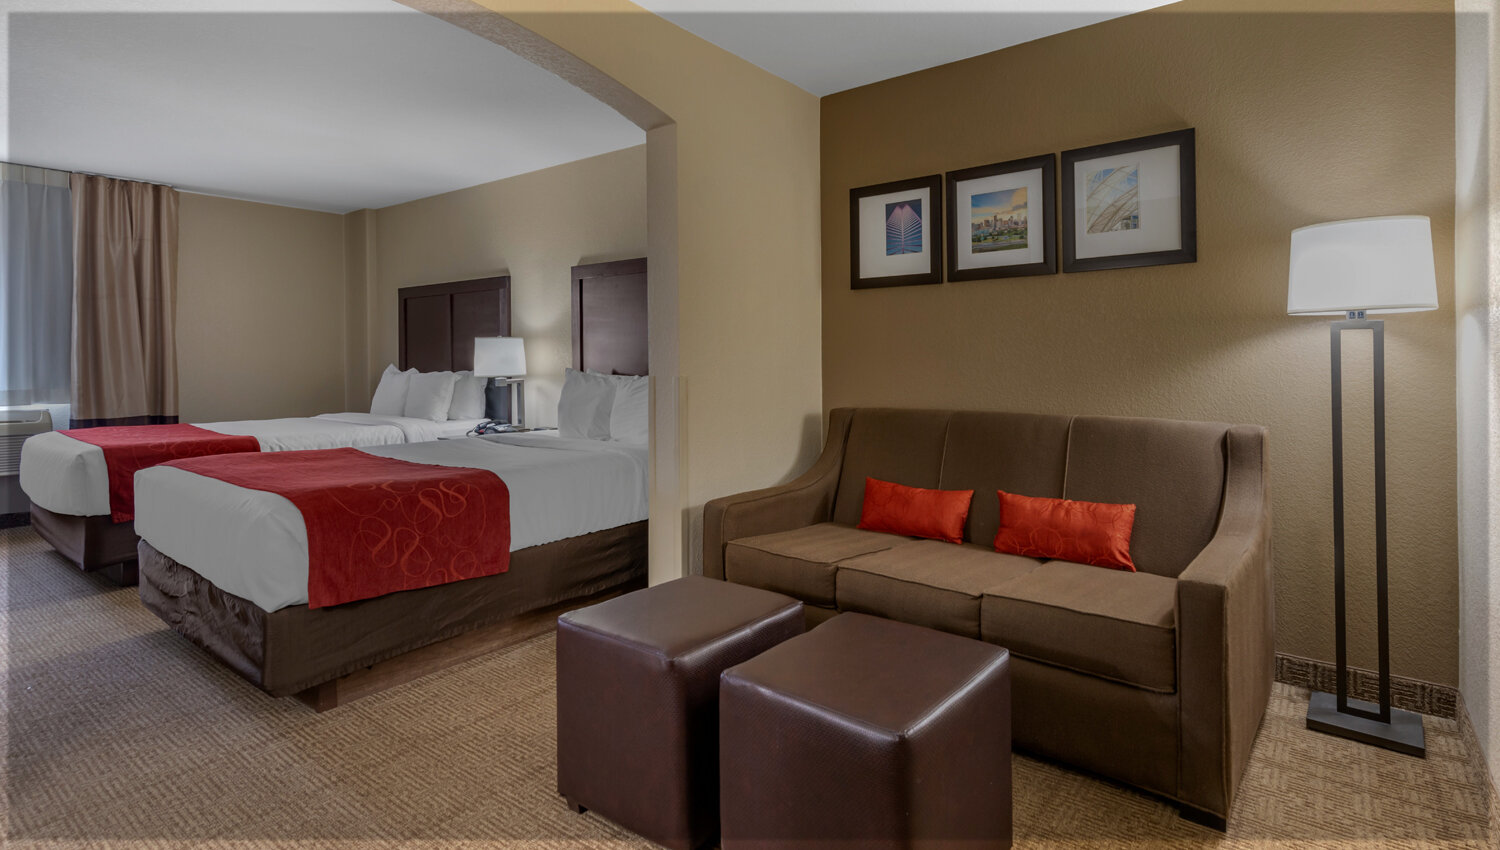 SUITES THAT ARE IDEAL FOR BUSINESS AND LEISURE TRAVEL